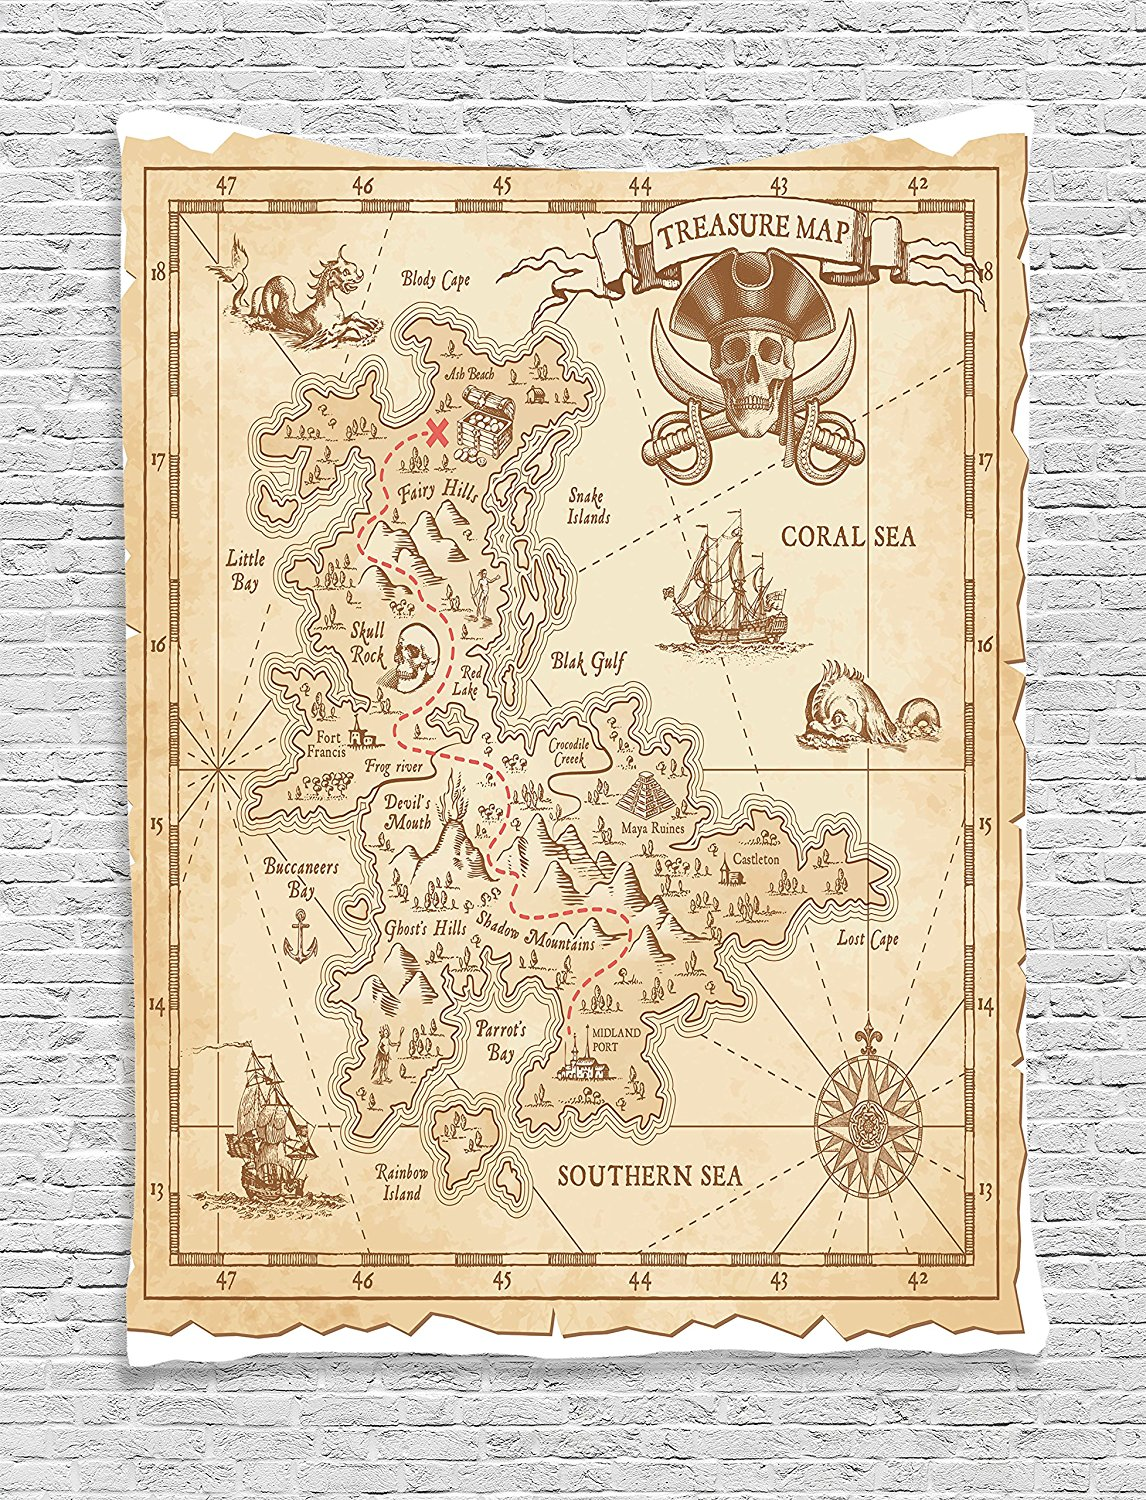 Ocean Island Decor Tapestry By Ambesonne, Old Ancient Antique Treasure Map With Details Retro Color Adventure Sailing Pirate Print, Bedroom Living Room Dorm Decor, 40Wx60L Inches, Cream